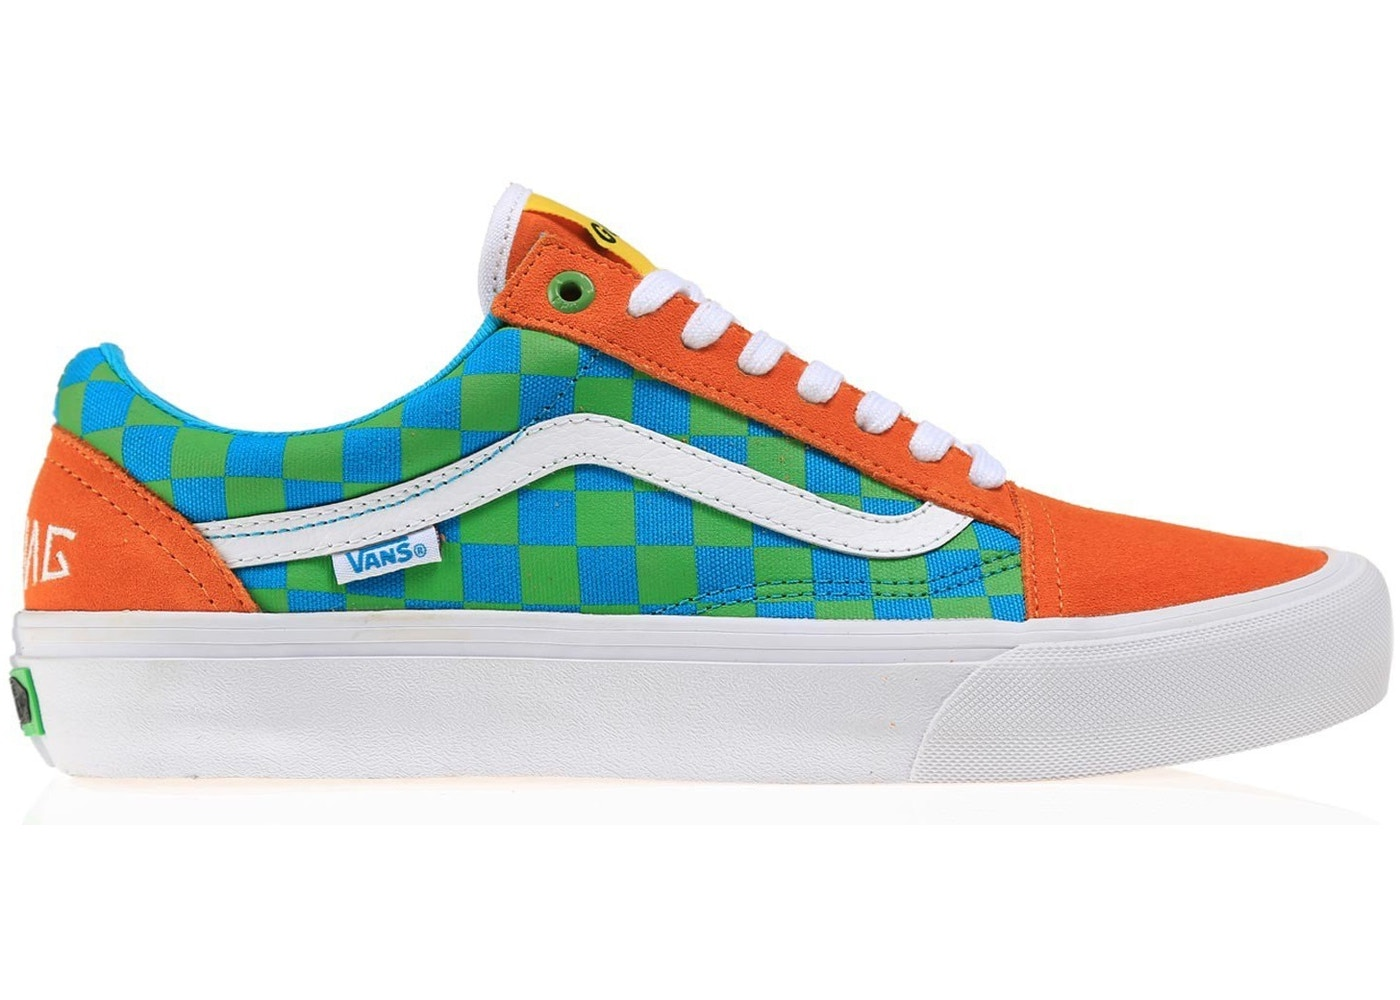 Vans Old Skool Golf Wang Orange